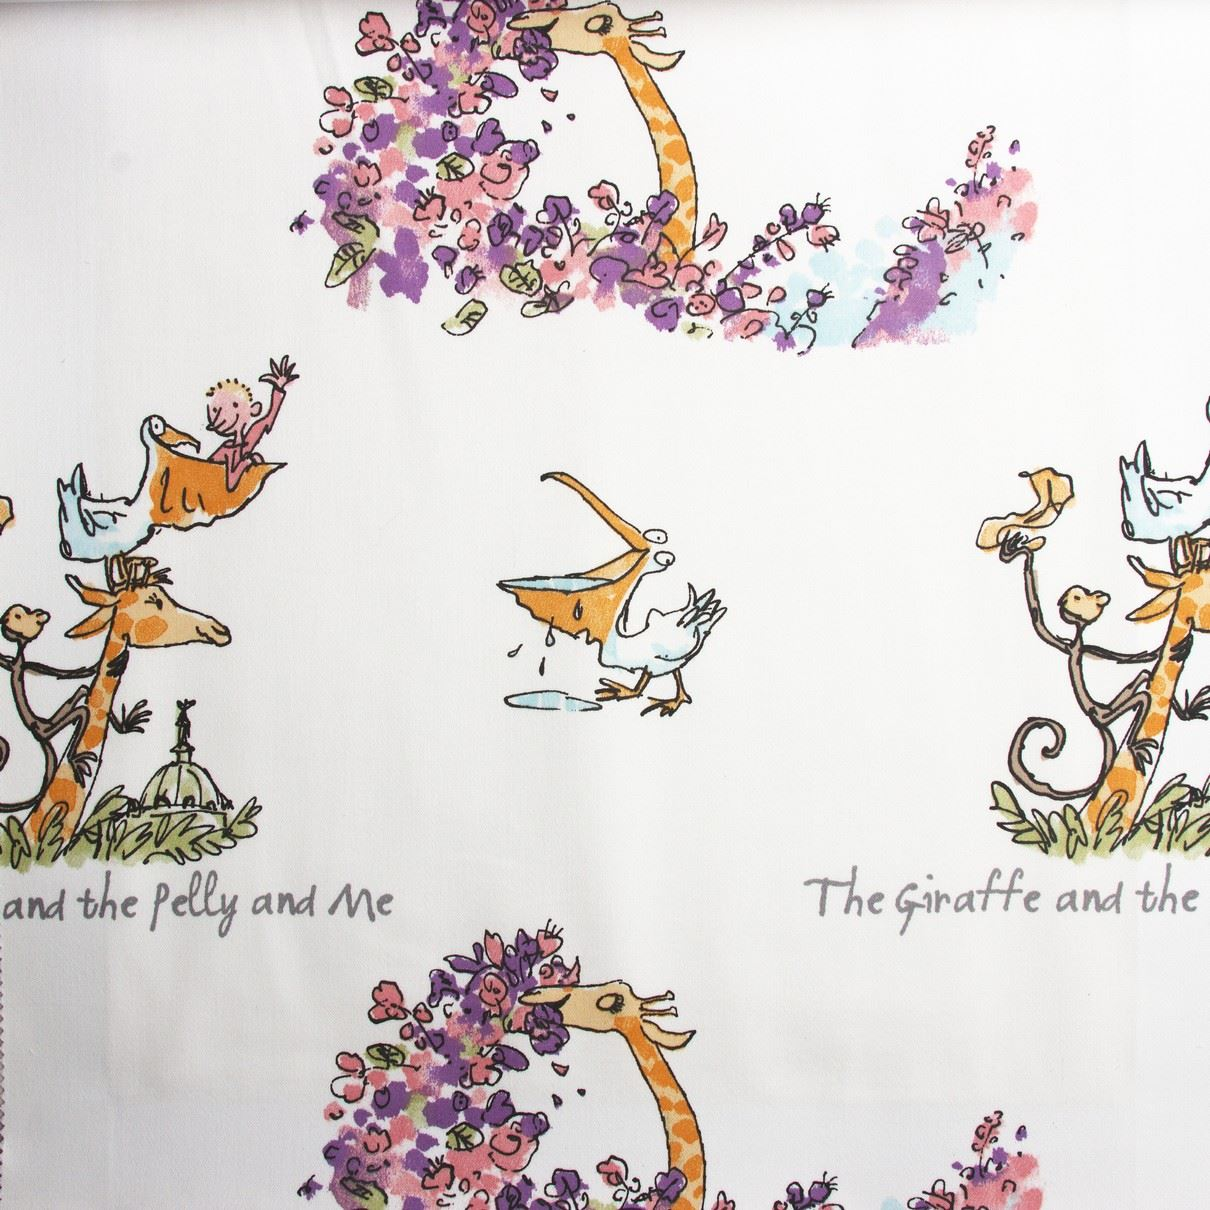 Roald dahl quentin blake art story quilting curtain craft for Children s character fabric